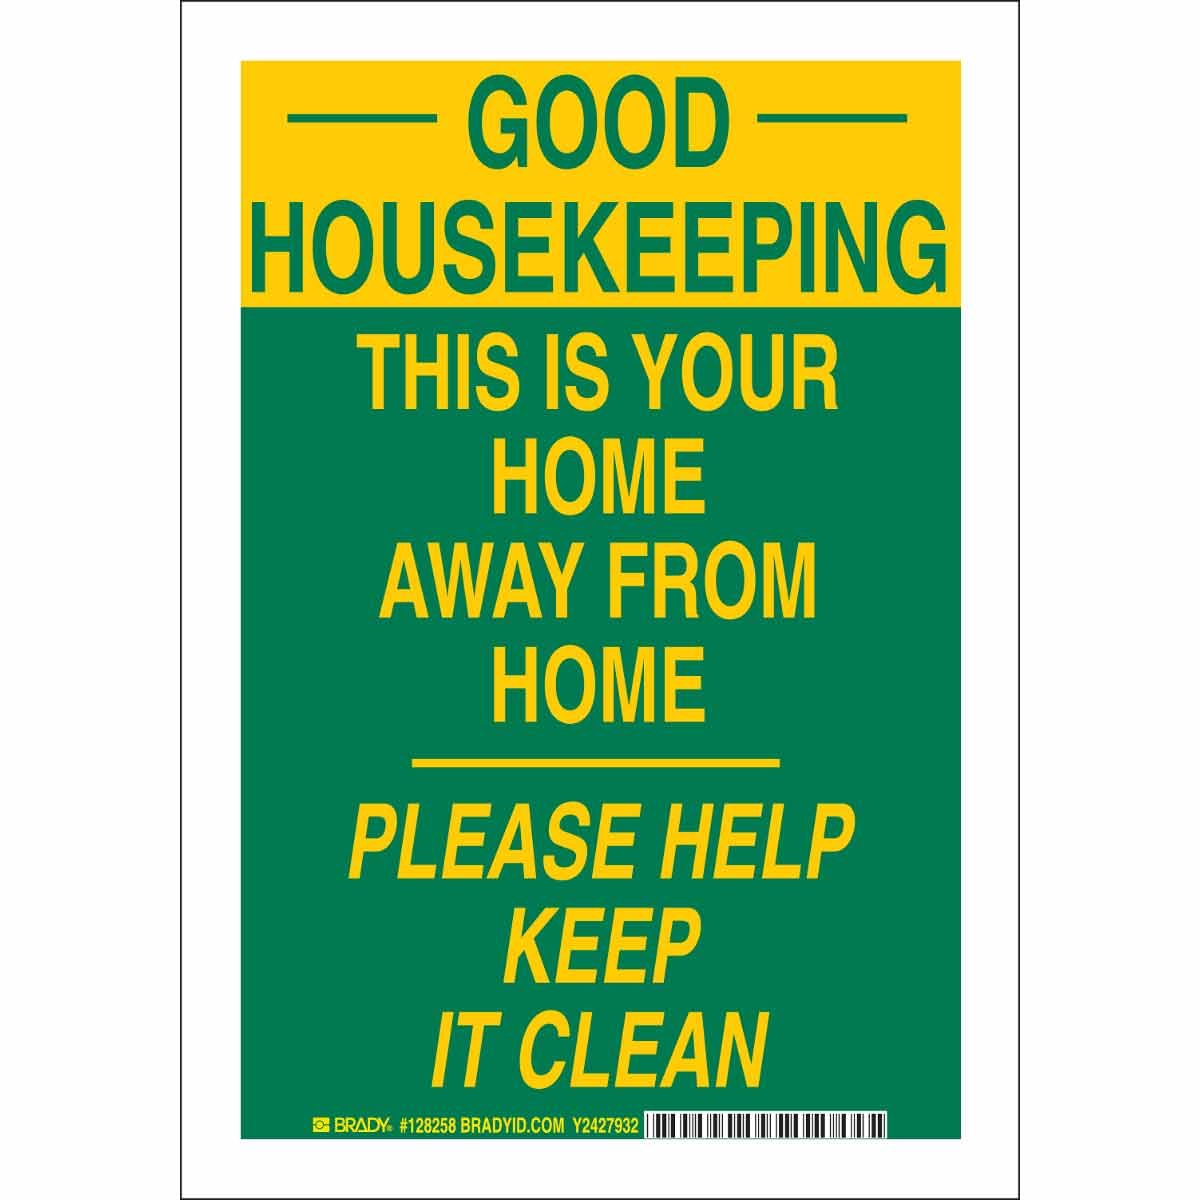 GOOD HOUSEKEEPING This Is Your Home